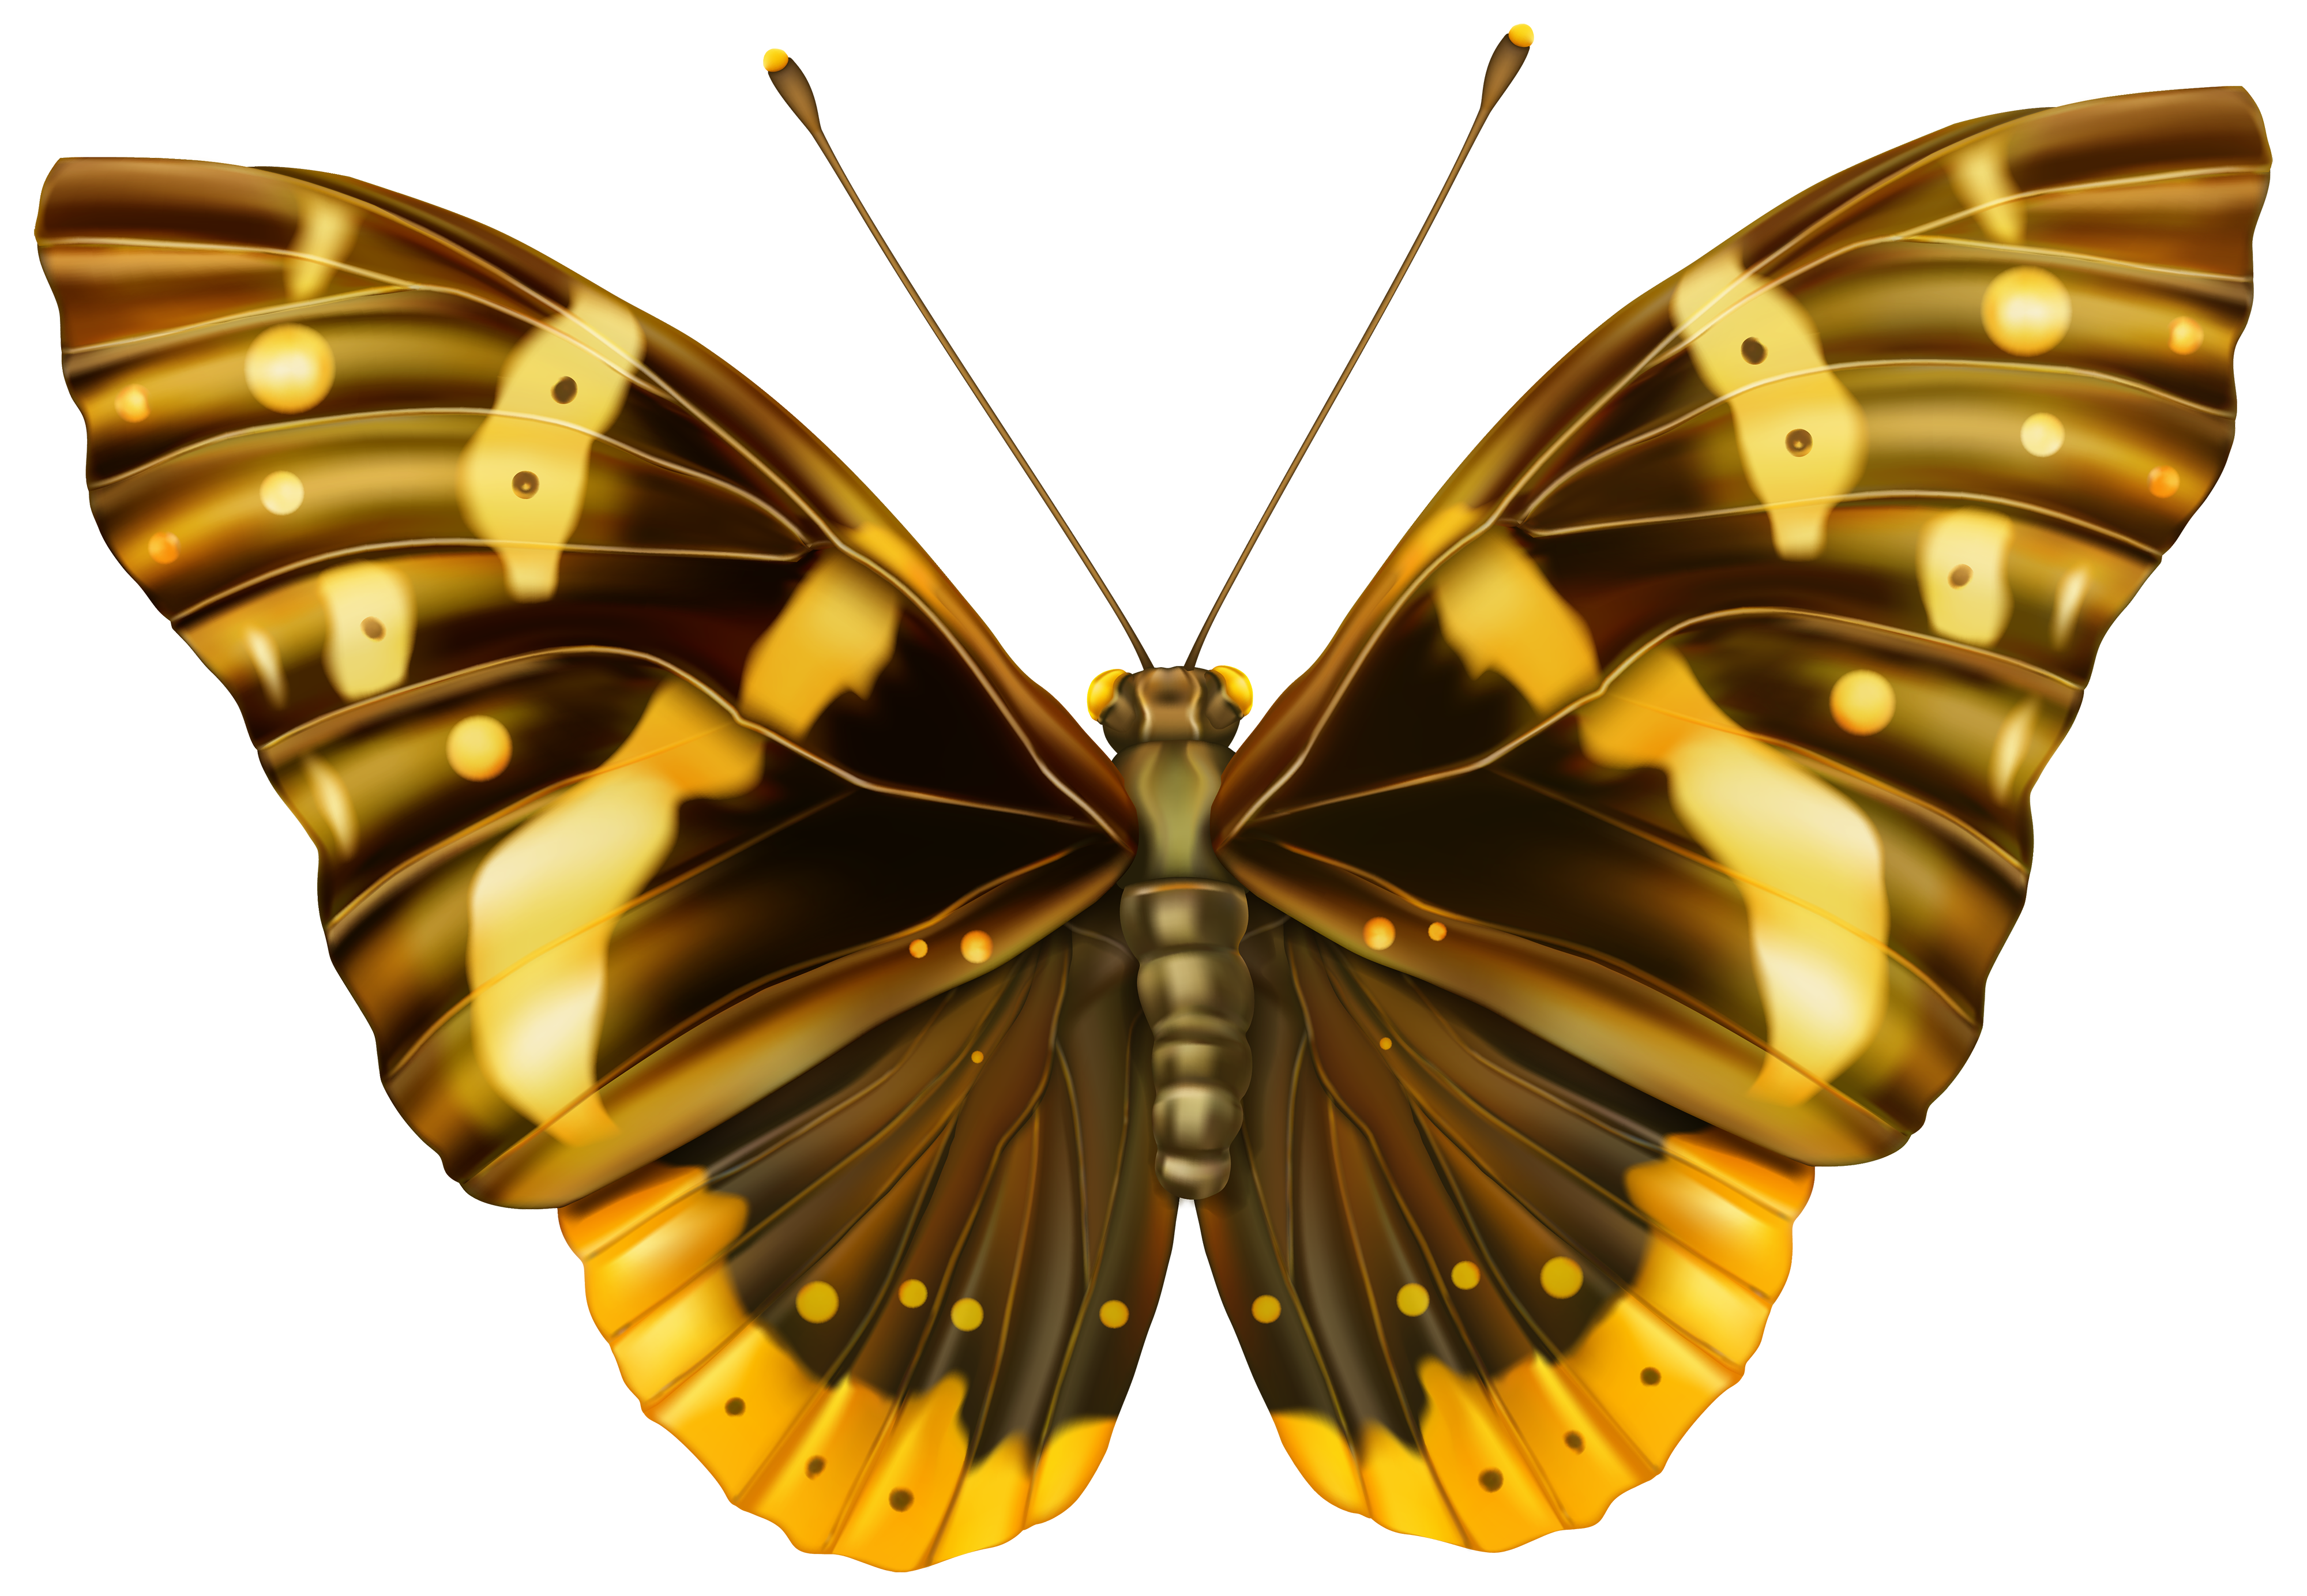 Brown And Yellow Butterfly Clipart Png Image Butterfly Clip Art Butterfly Drawing Butterfly Painting